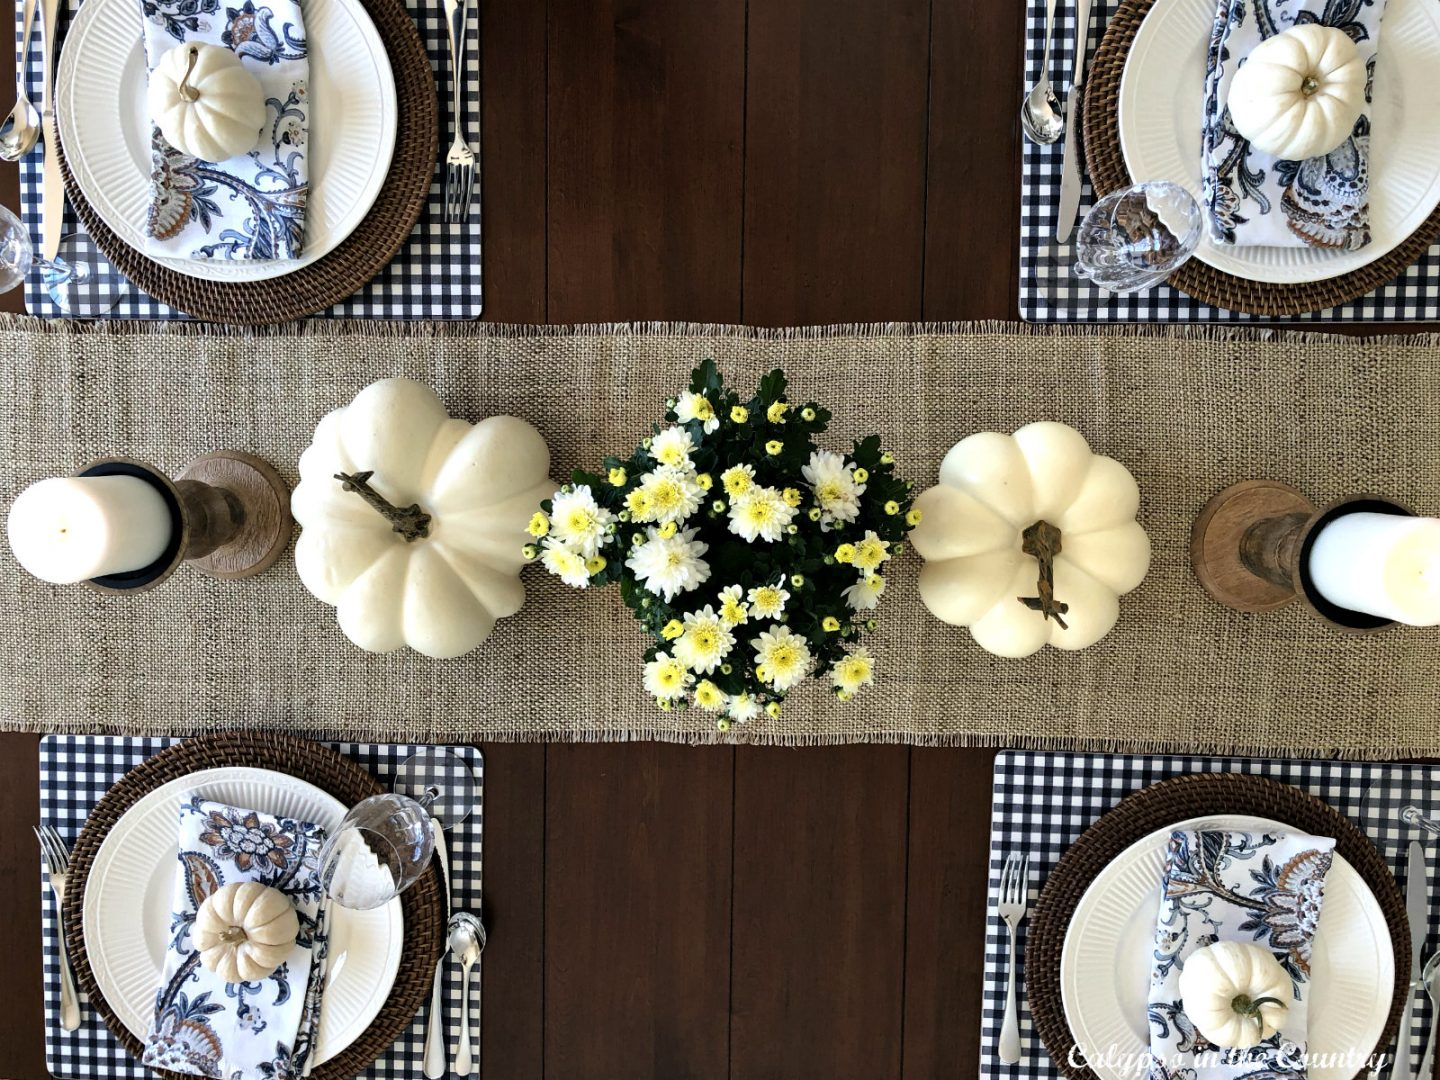 Top view of kitchen table decorated for fall with mums and white pumpkins